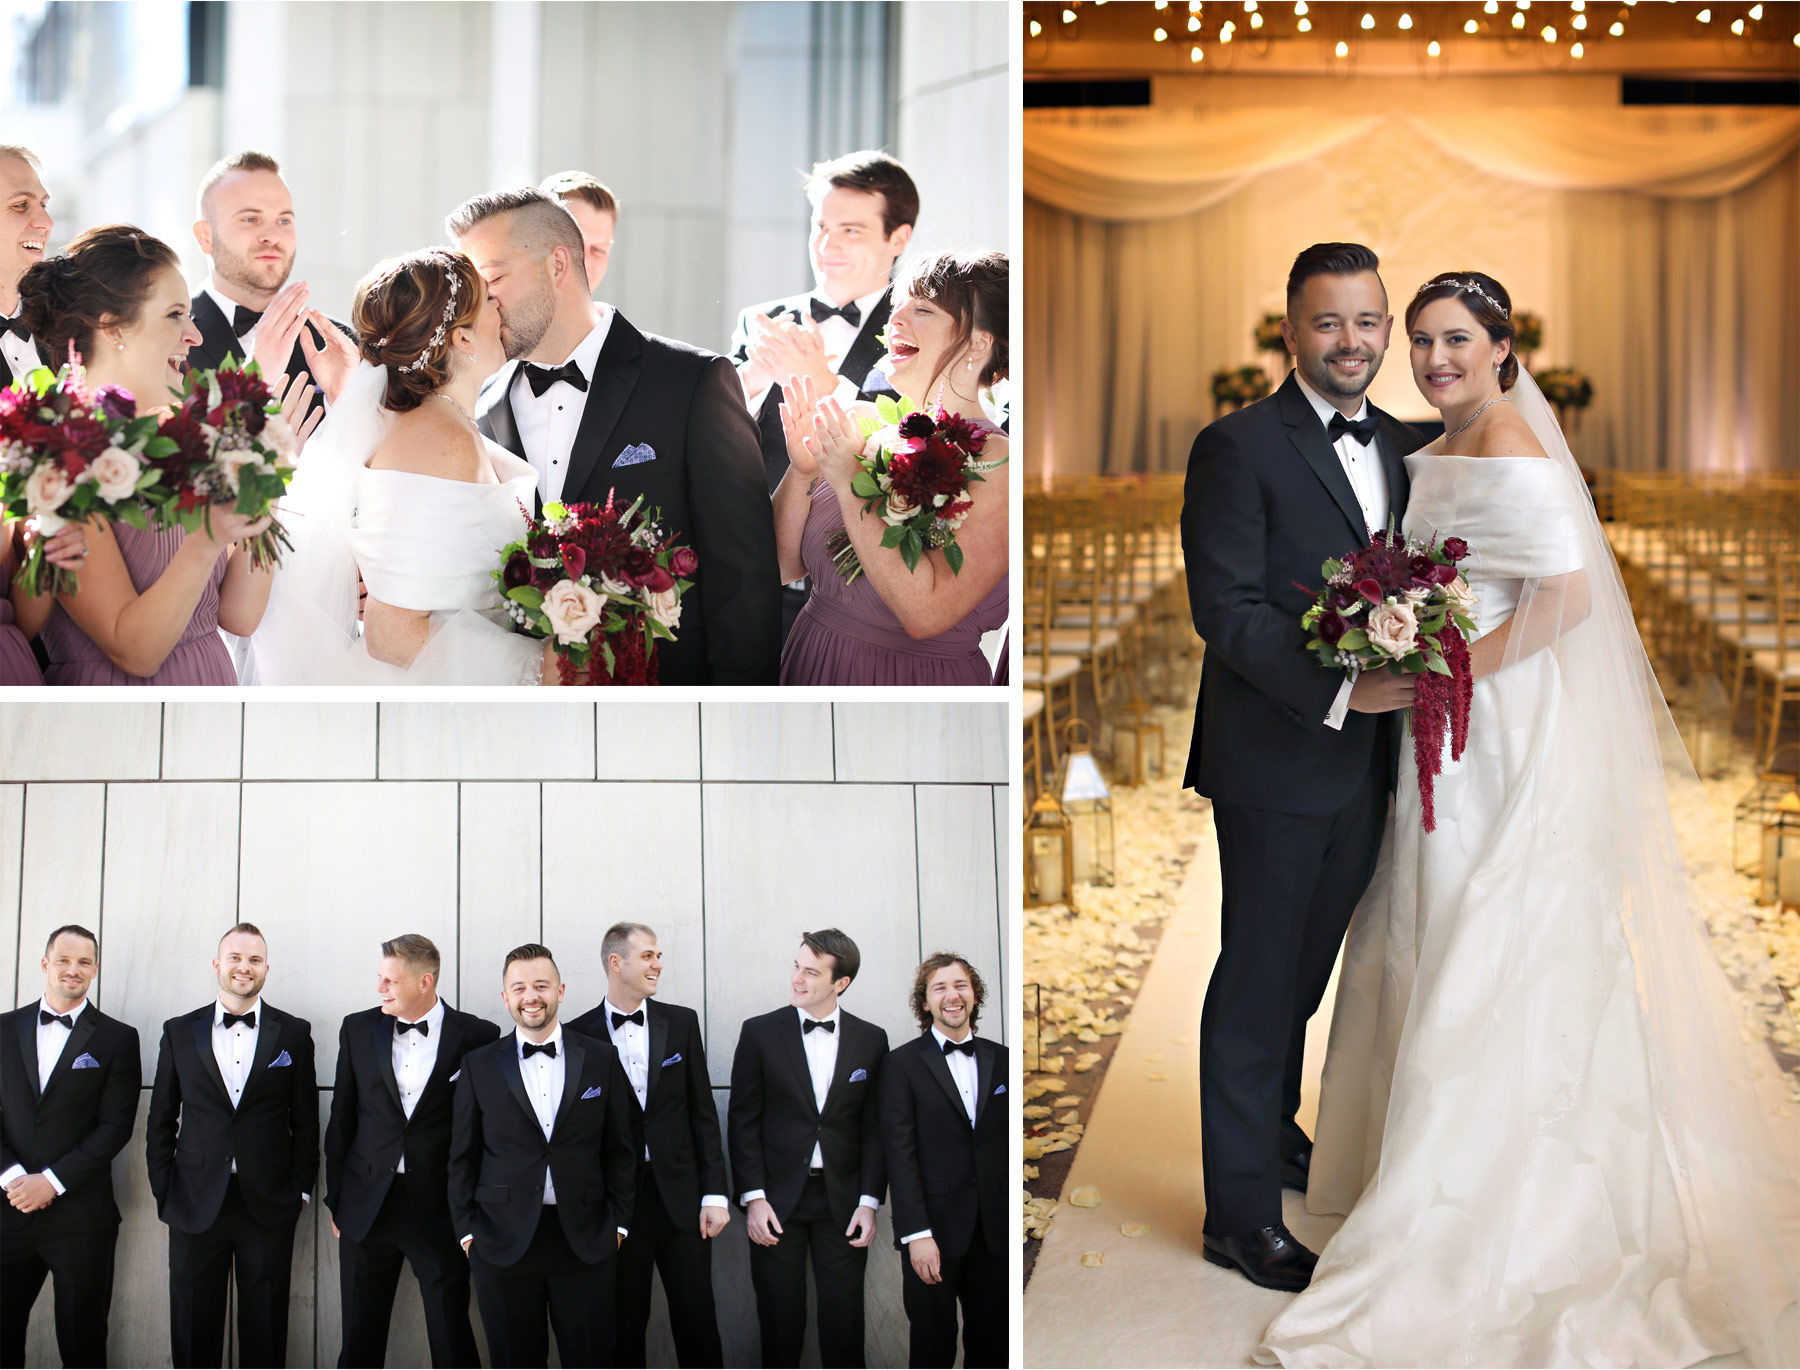 12-Minneapolis-Minnesota-Wedding-Photography-by-Vick-Photography-Loews-Hotel-Downtown-Wedding-Party-Groups-Caitlin-and-Alec.jpg